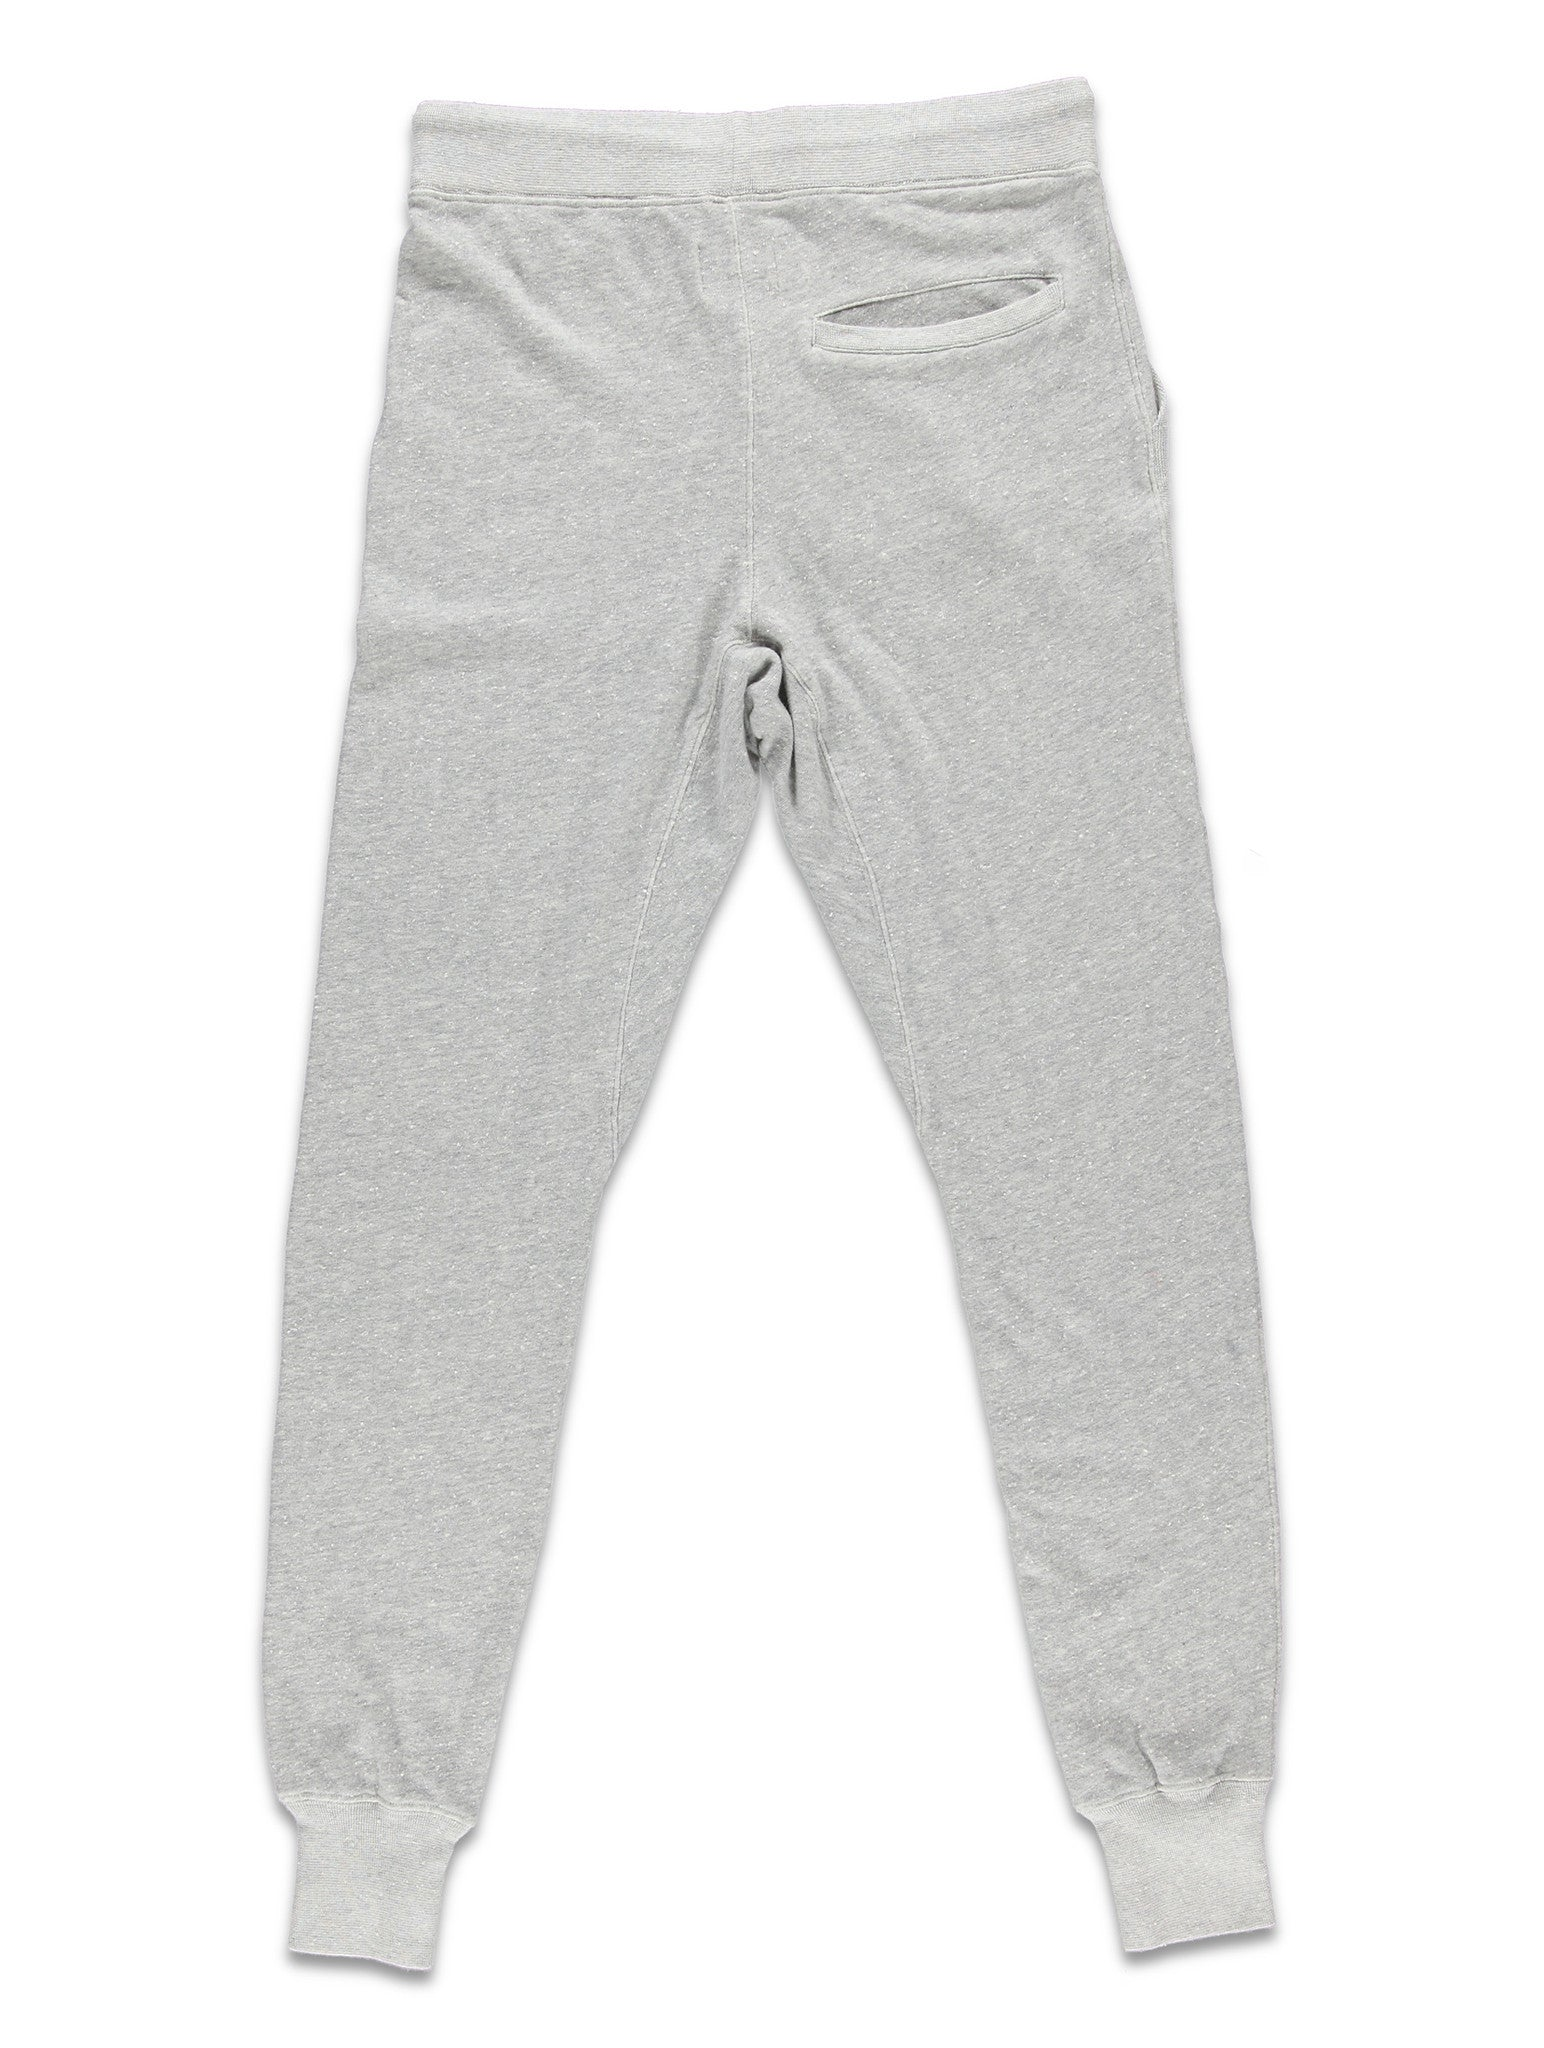 SONOMA - SWEATPANT - BLUE